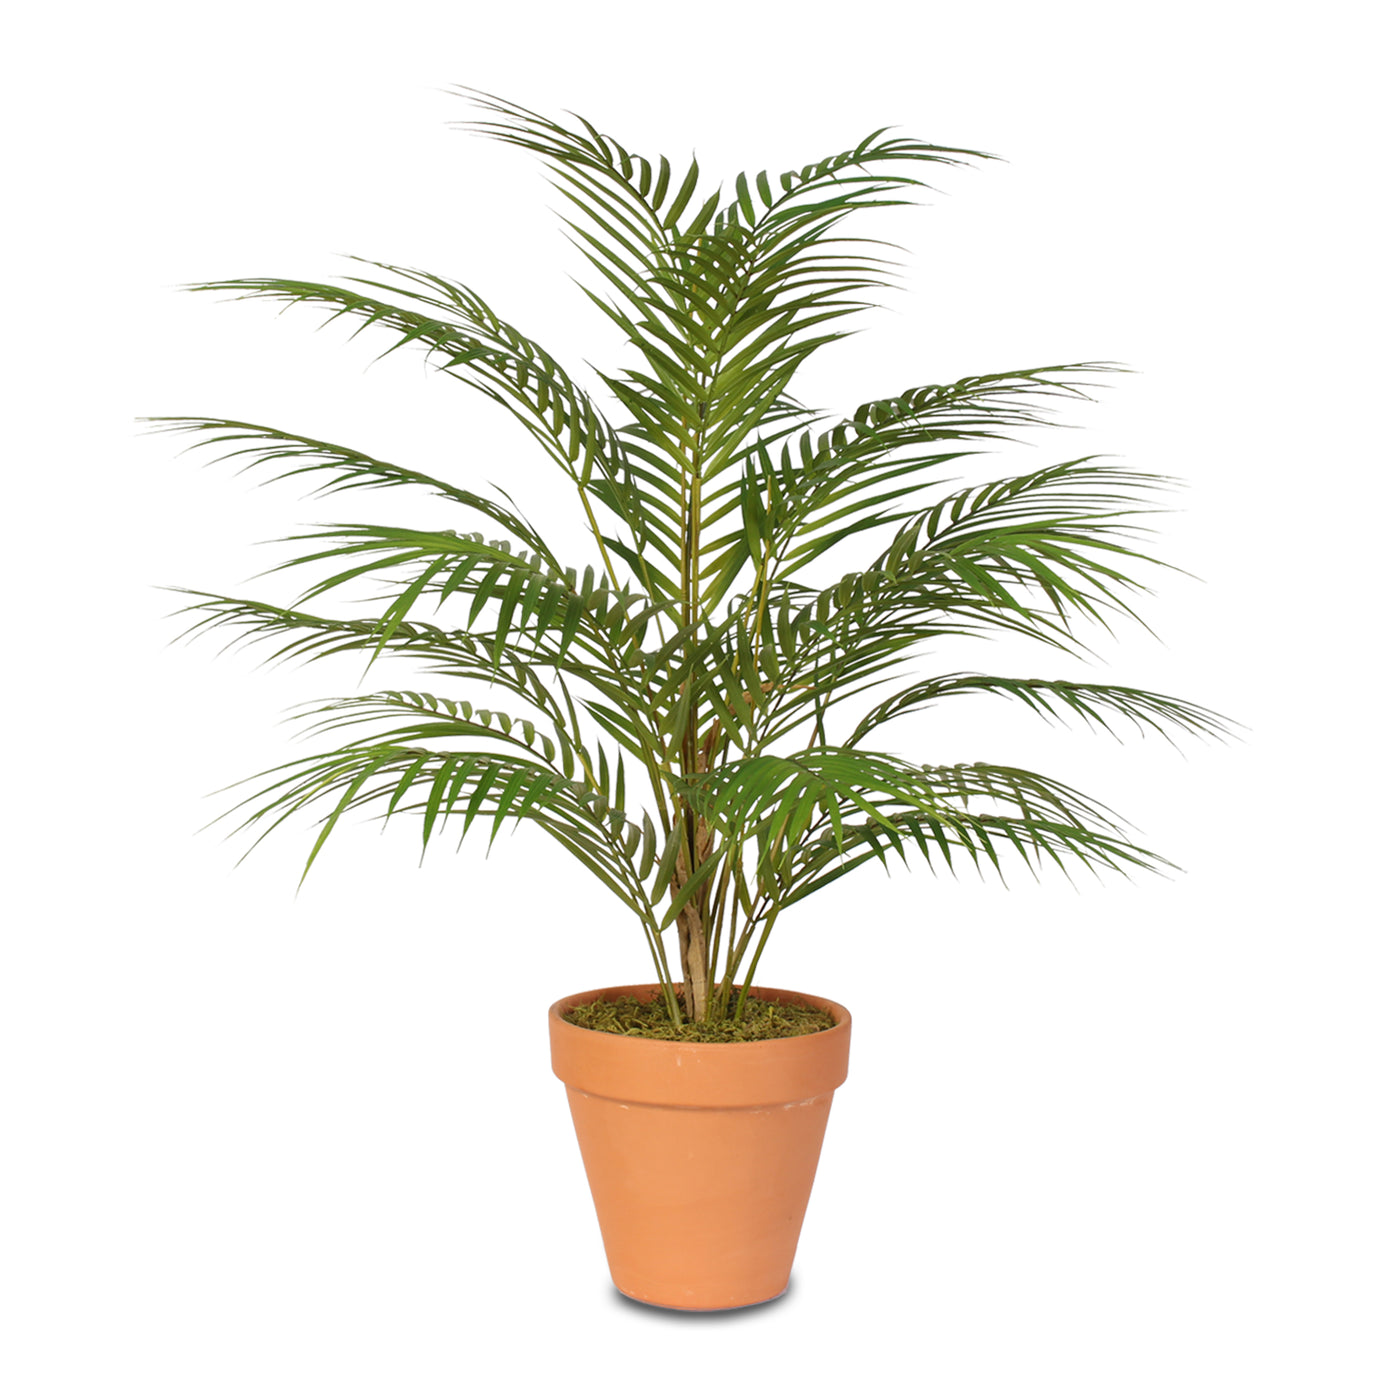 Palm Plant For Home on herb plants for home, vine plants for home, potted plants for home, tropical plants for home, water plants for home, decorative plants for home, indoor plants for home,